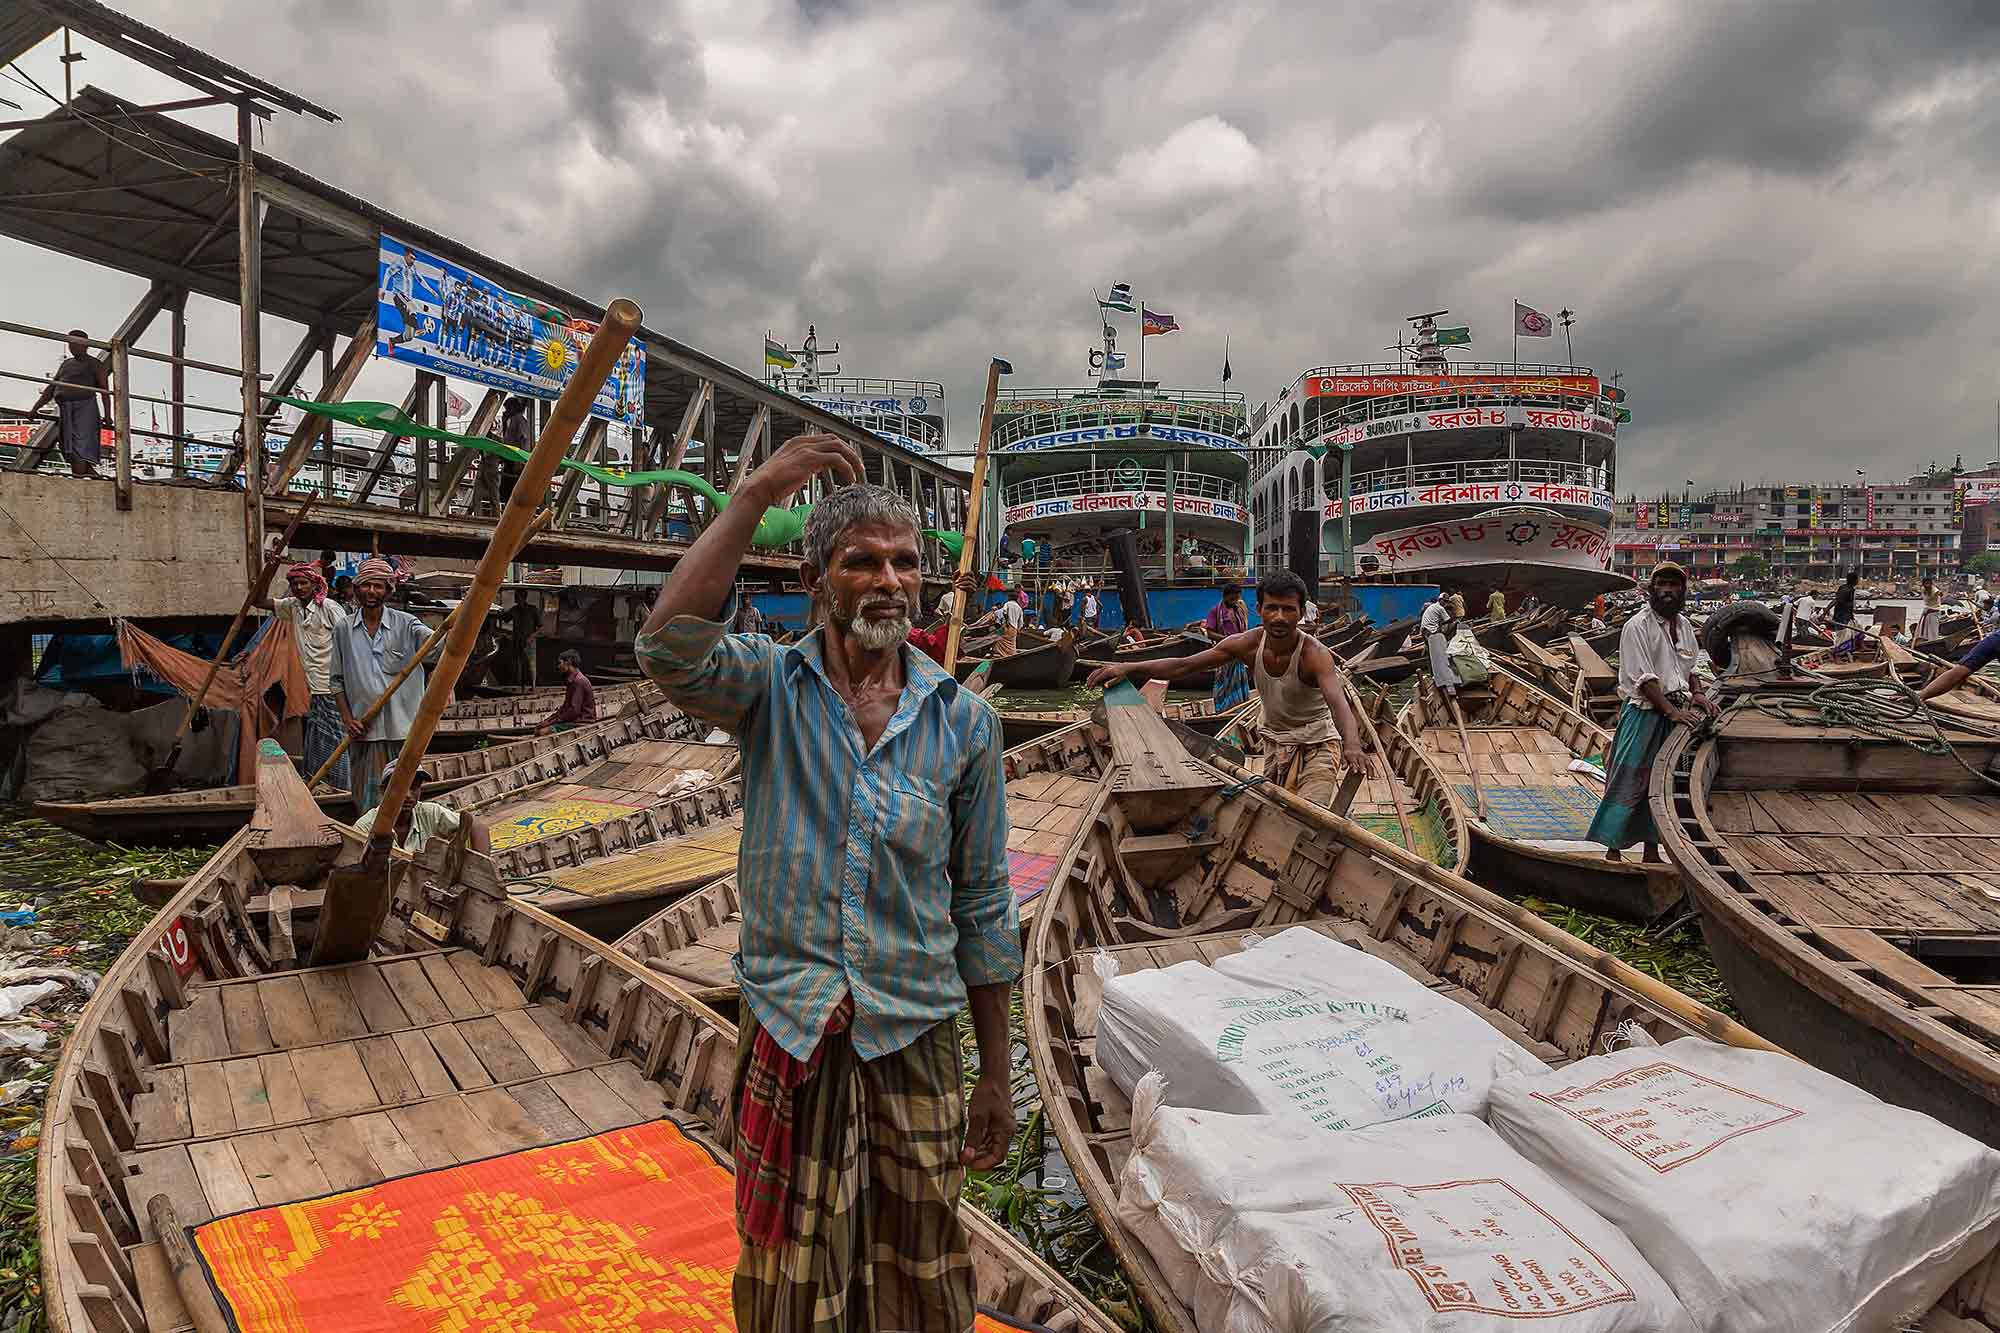 It's busy 24/7 at Sadarghat port in Dhaka, Bangladesh. © Ulli Maier & Nisa Maier